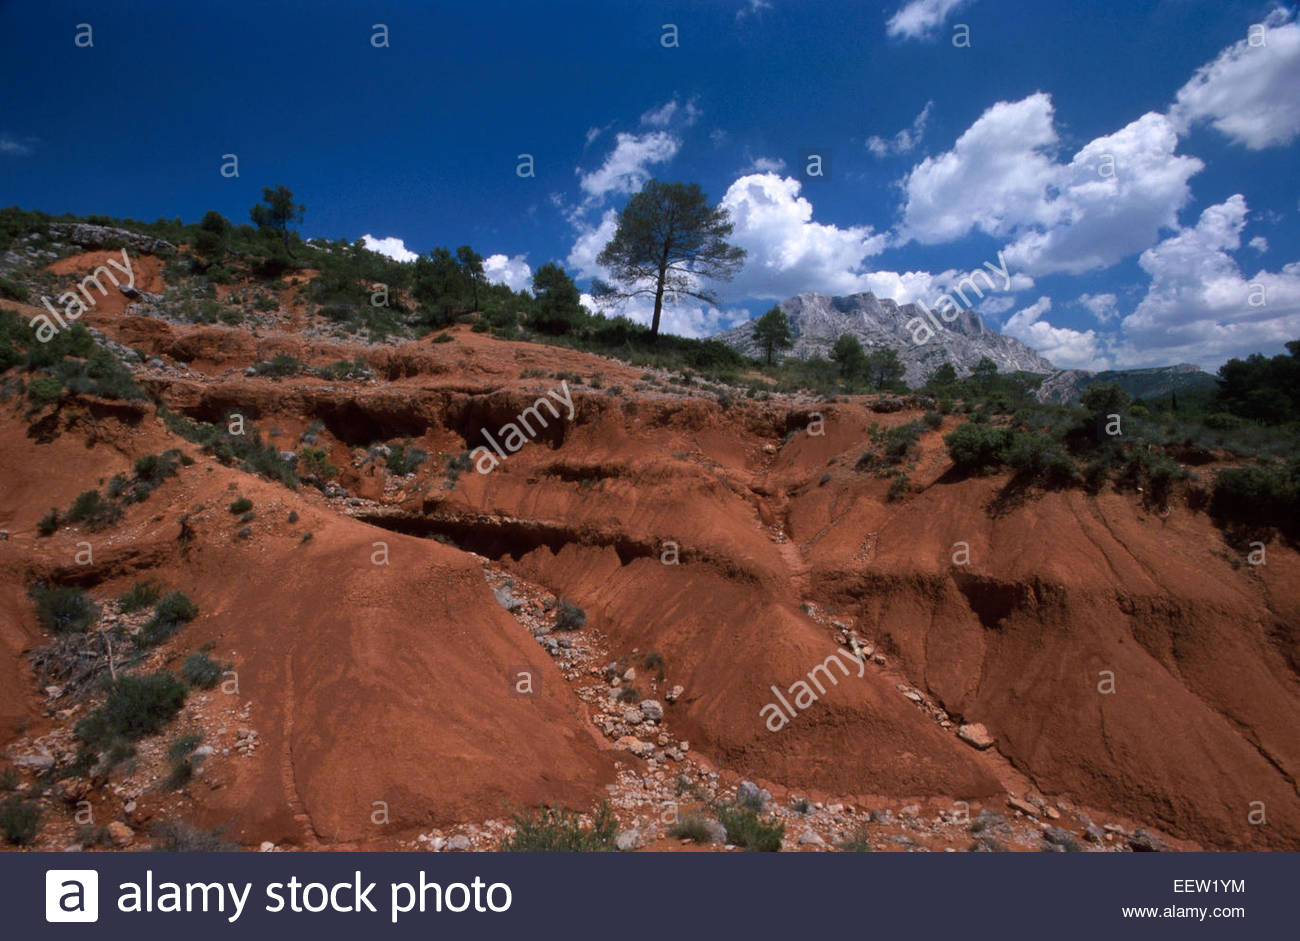 Montagne Sainte-Victoire, Bouches-du-Rhones, France, Legend of France - Stock Image